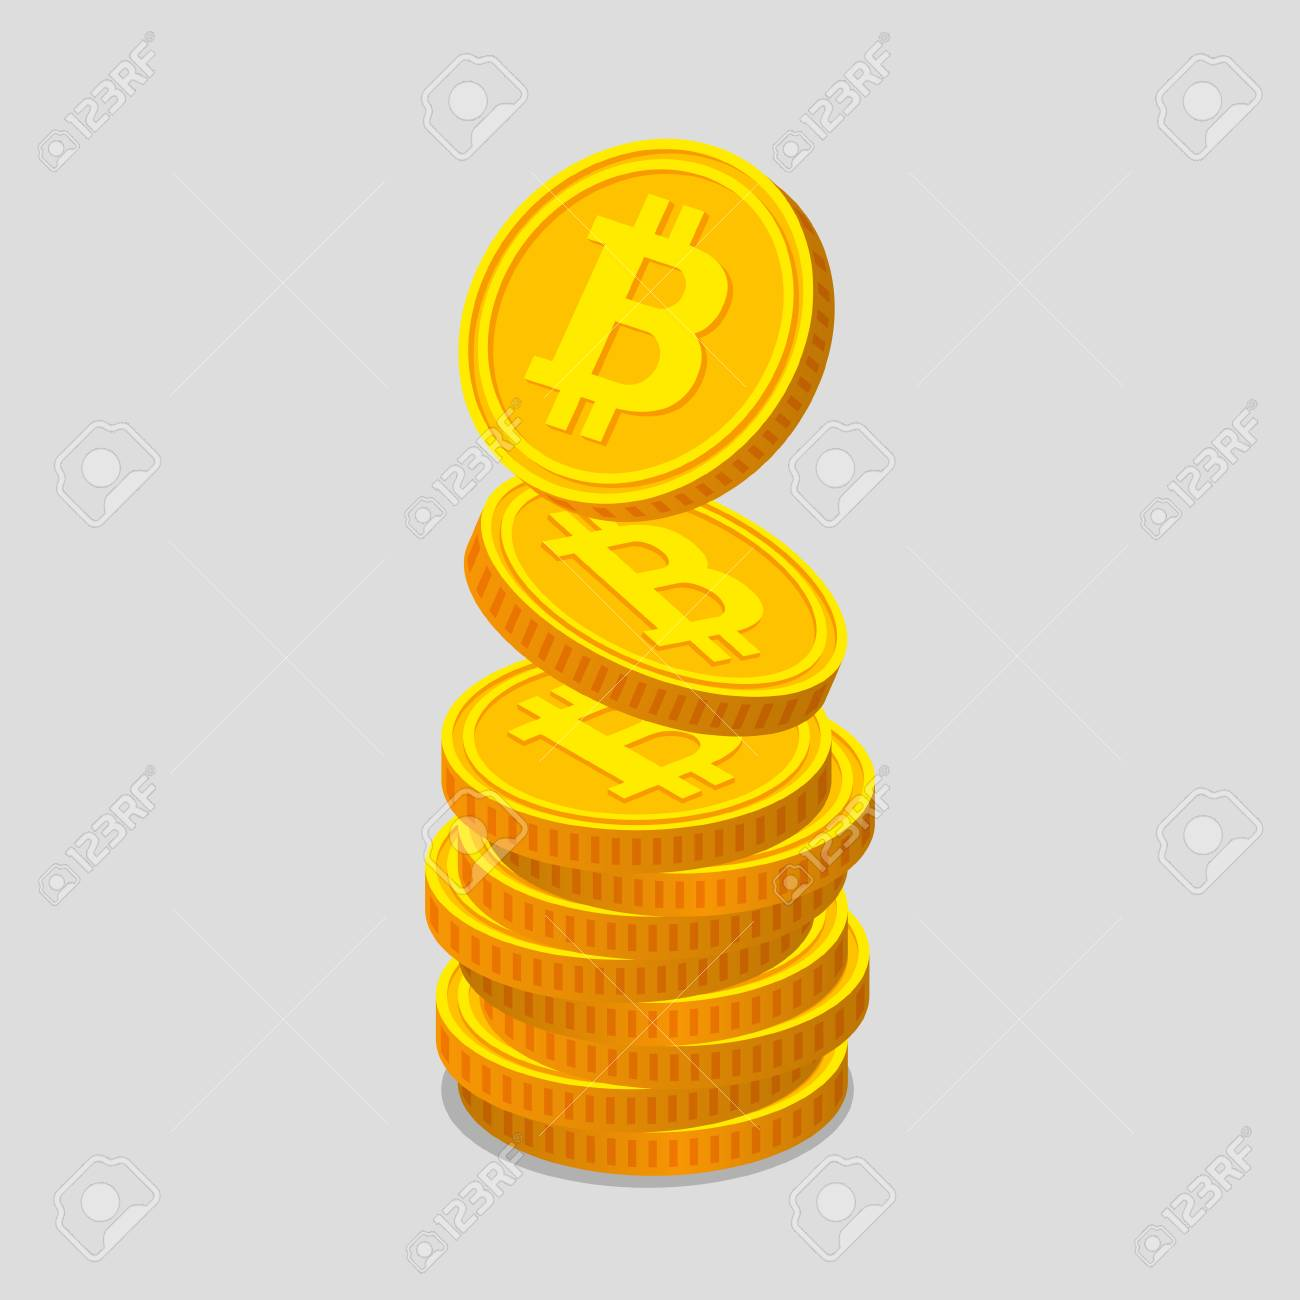 Stack Of Gold Coins With Bitcoin Symbols On Light Background